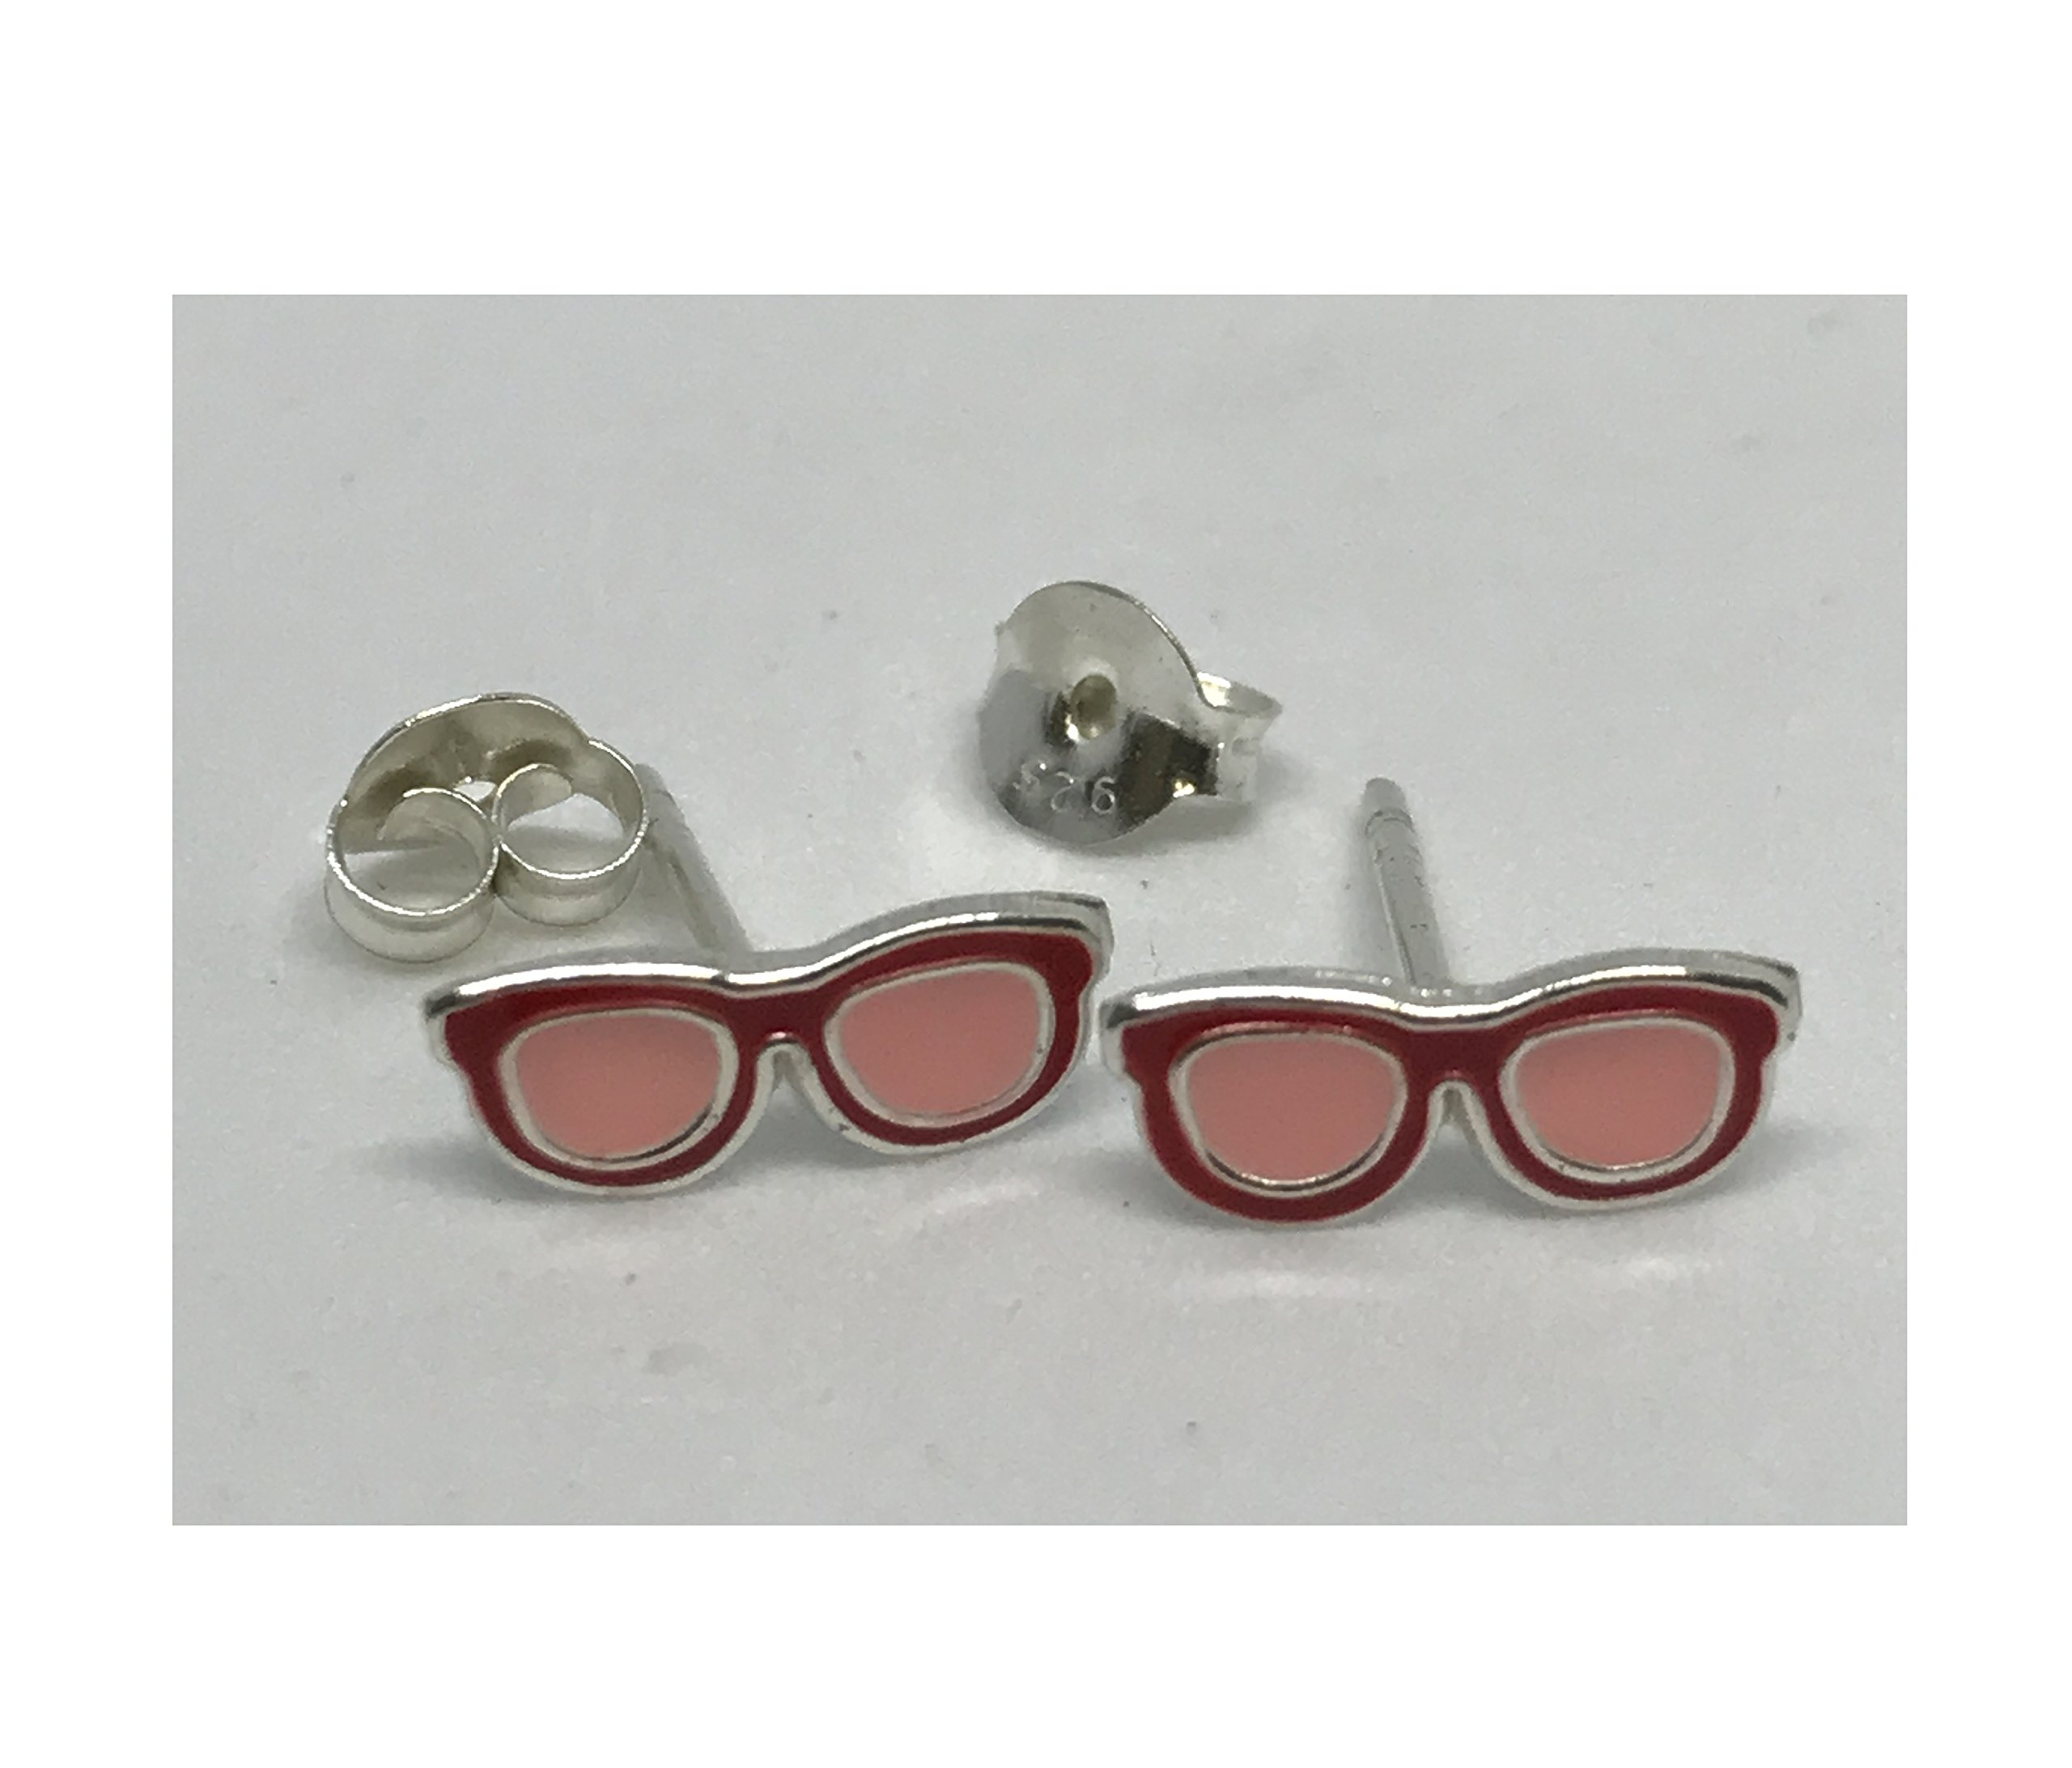 Children's Red Glasses Earrings - Silver Ear Studs with Epoxy